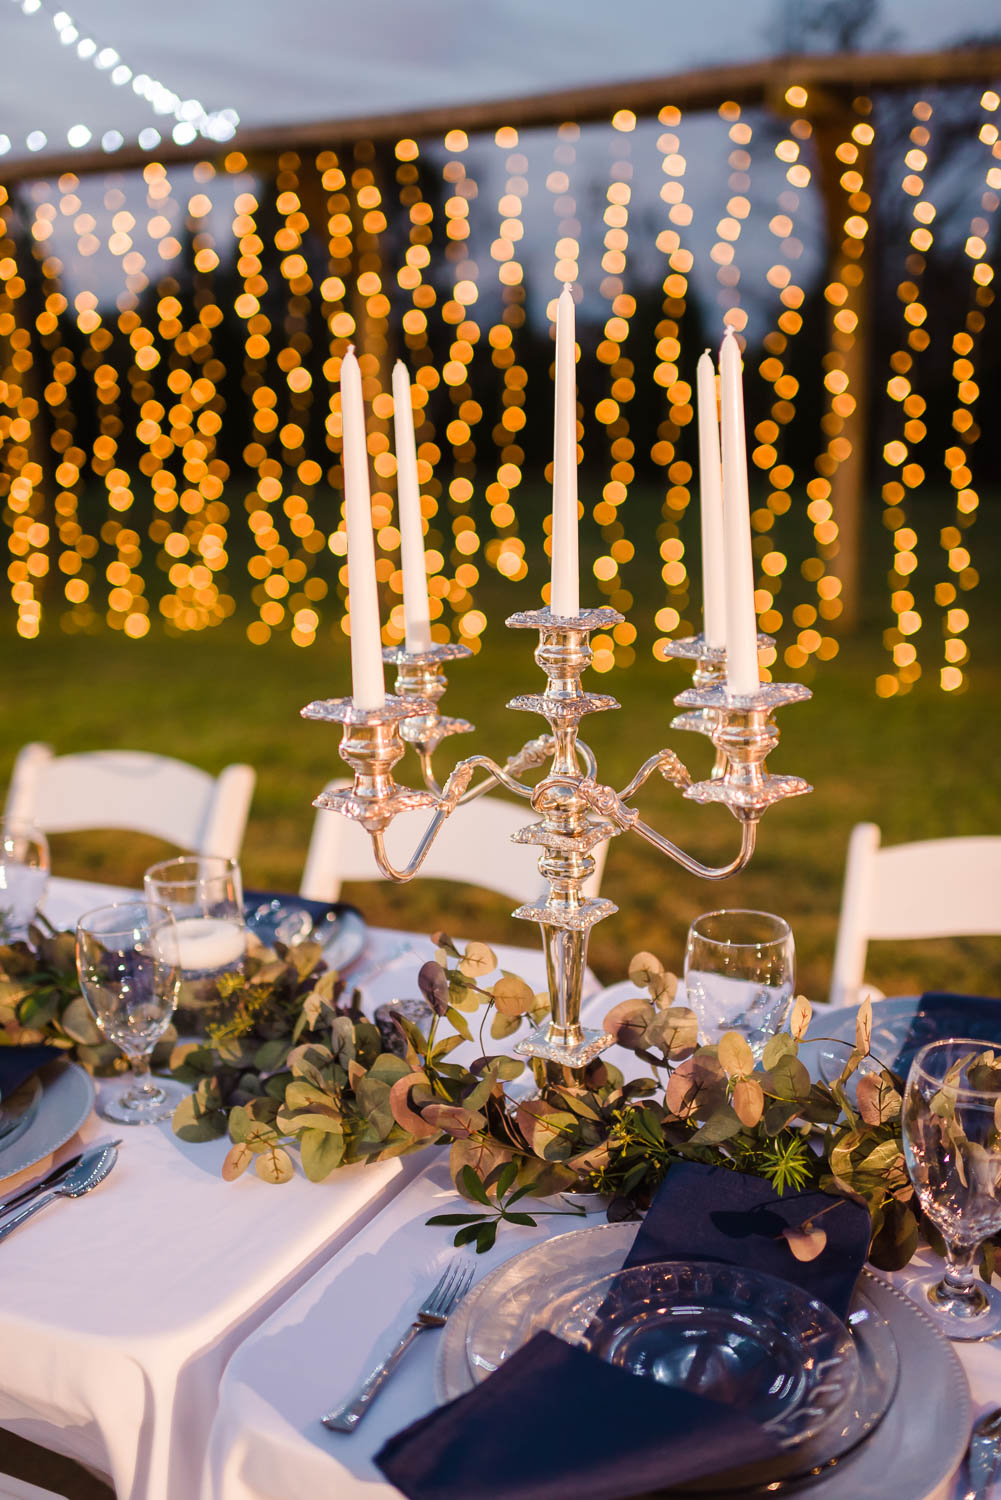 silver candlestick holder with white candles at outdoor reception